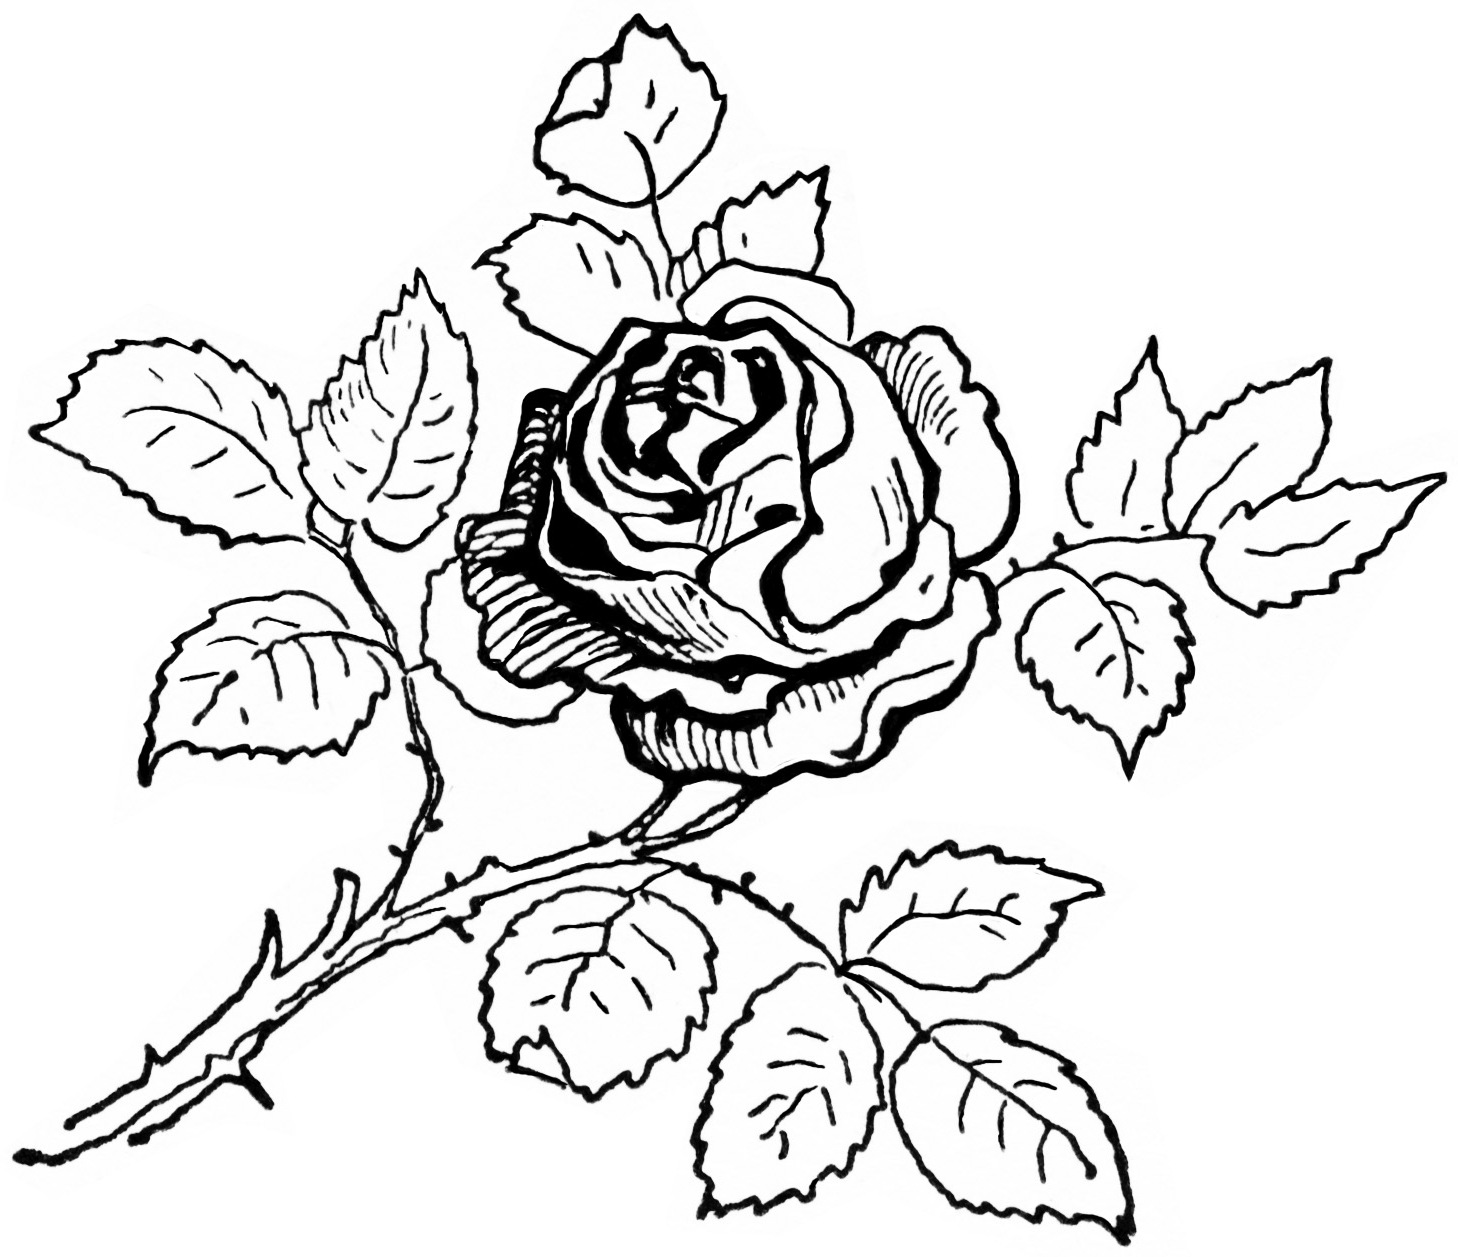 1458x1257 Knumathise Realistic Rose Drawing Outline Images